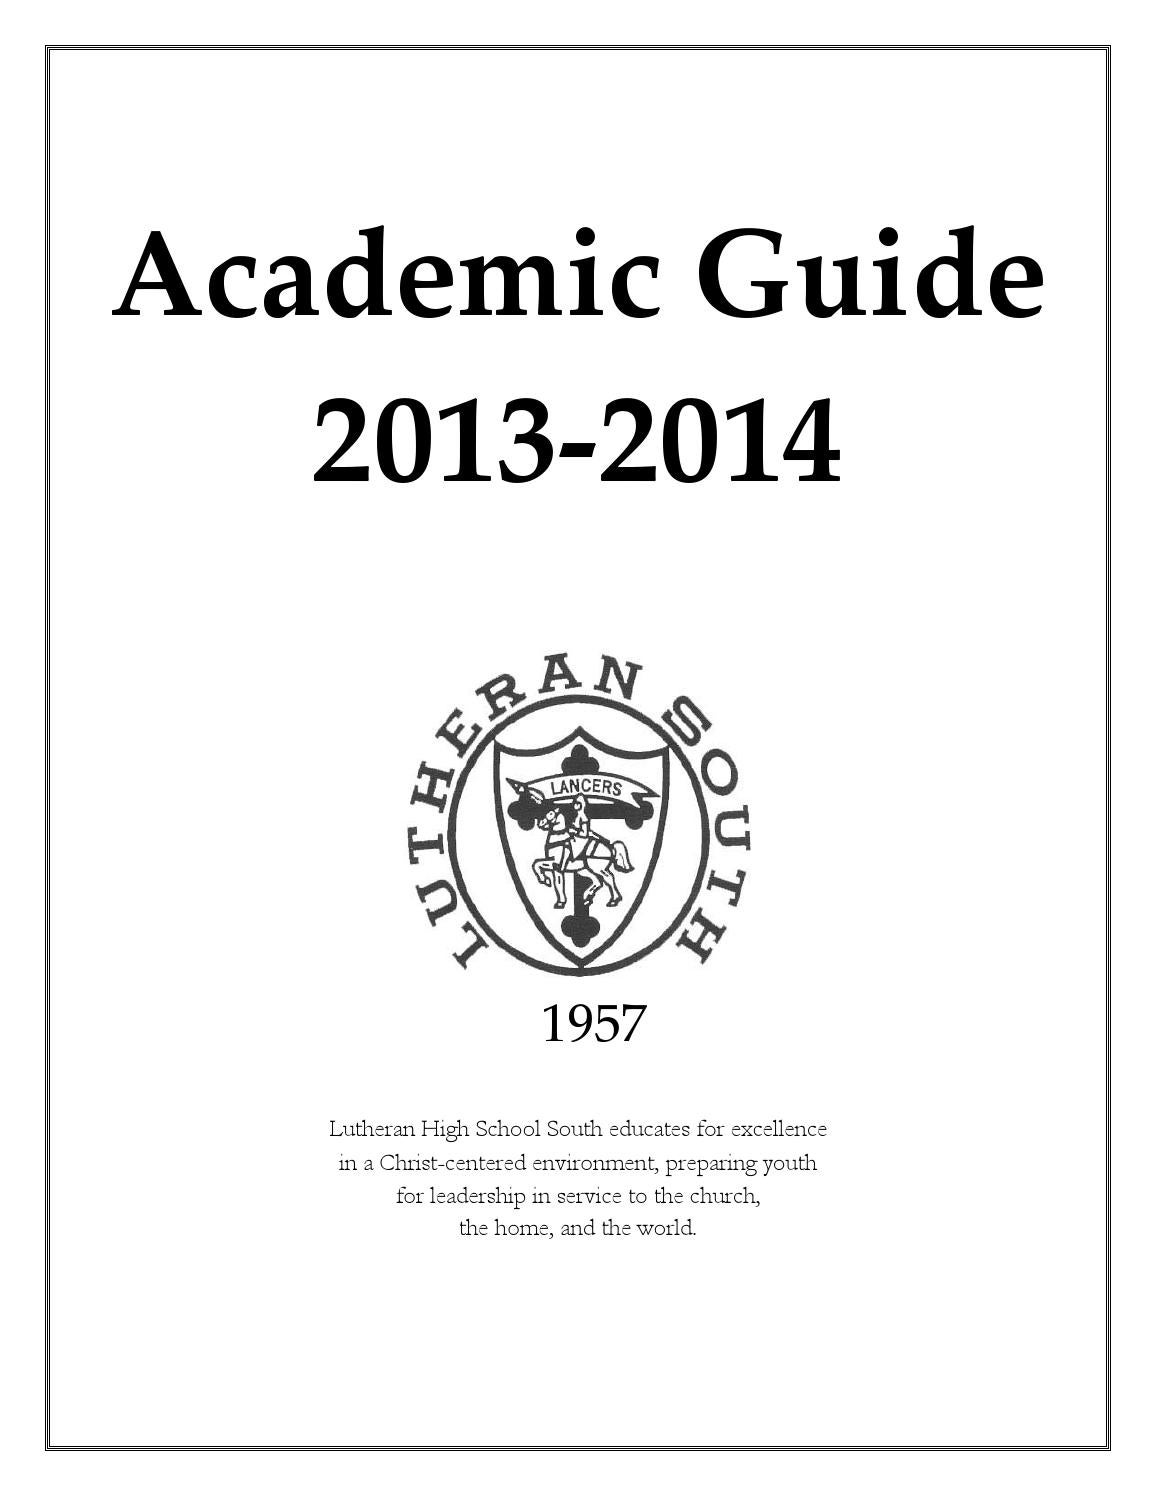 Academicguide 2013 14 as of 3 6 13 by Lutheran High School